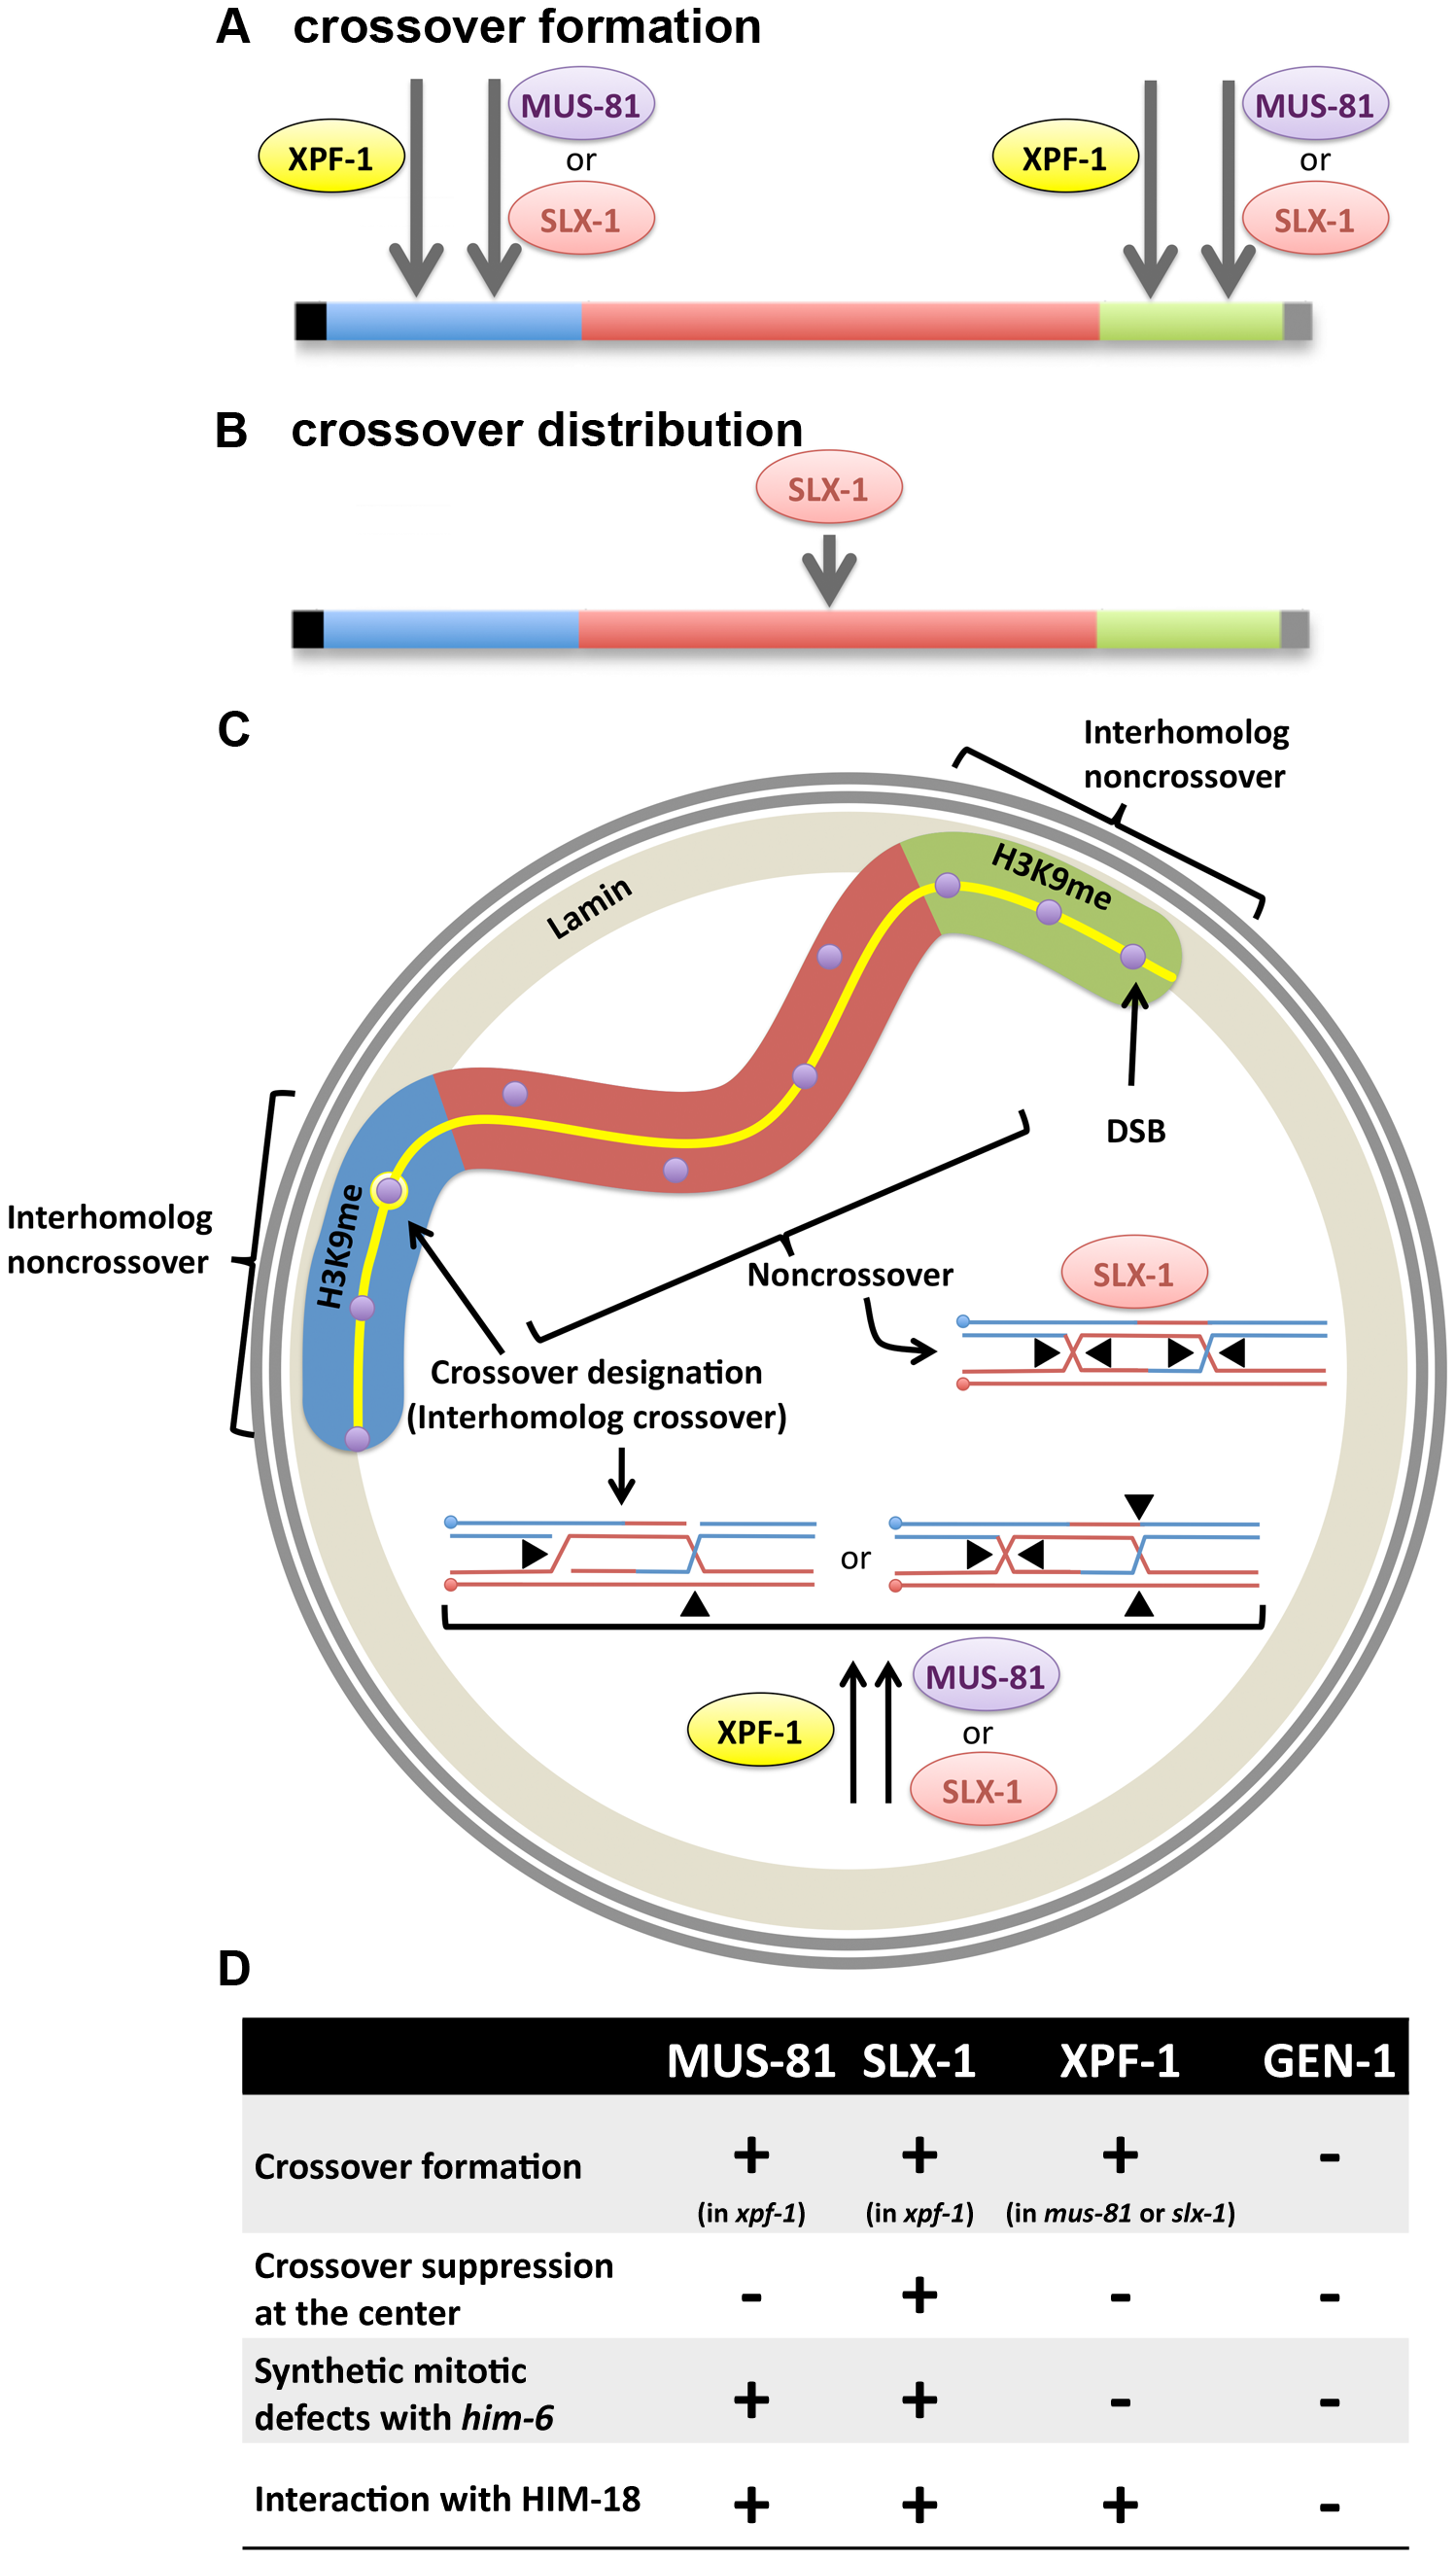 Interplay between structure-specific endonucleases for crossover control.